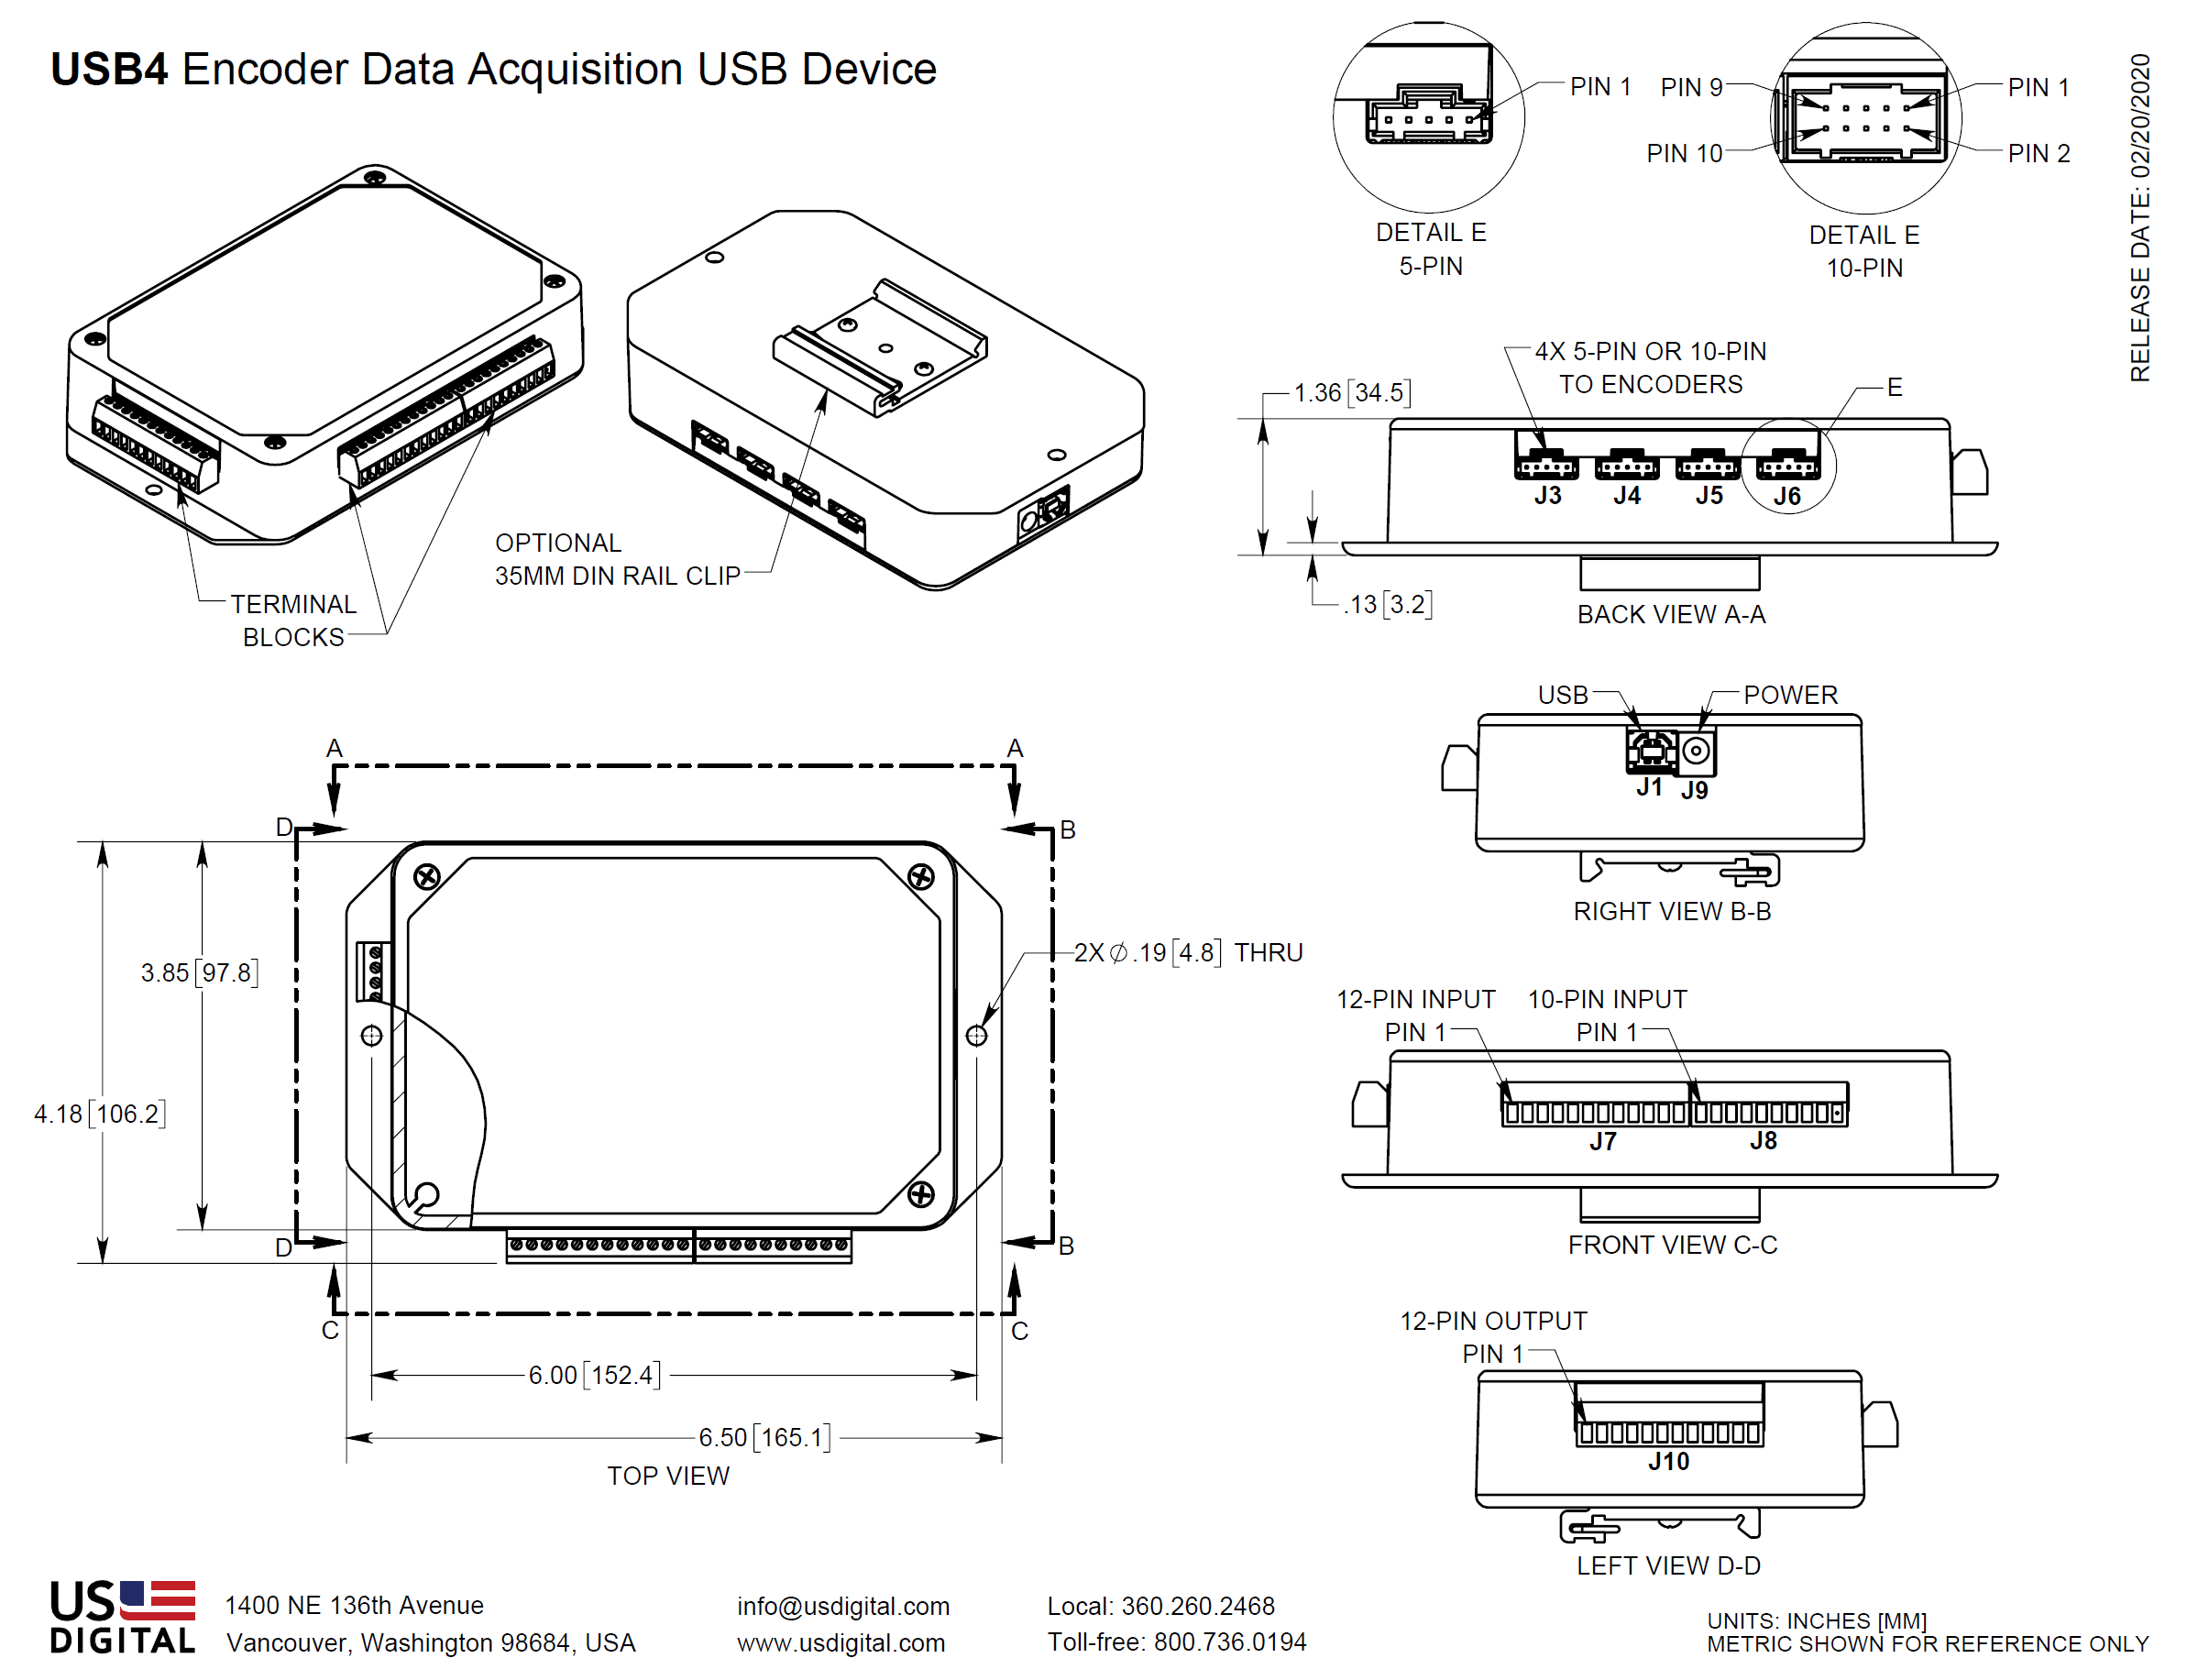 Us Digital Products Usb4 Encoder Data Acquisition Usb Device 4 2 Logic Diagram Downloads